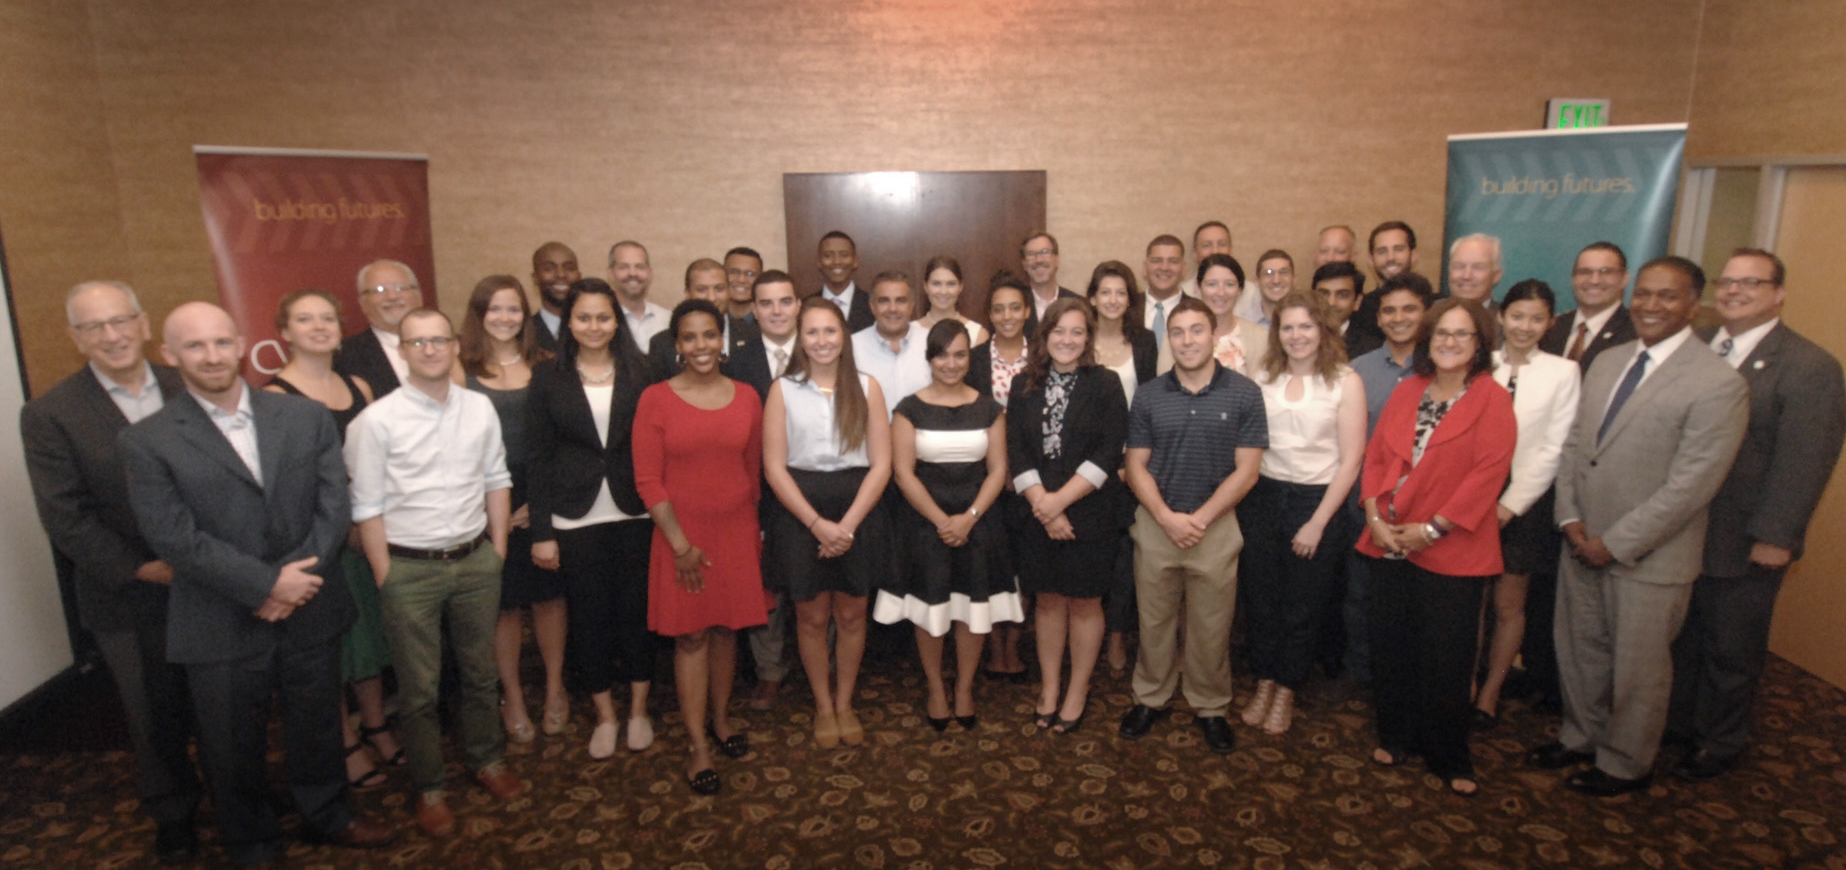 The 2015 interns and employers at the Closing Ceremony.